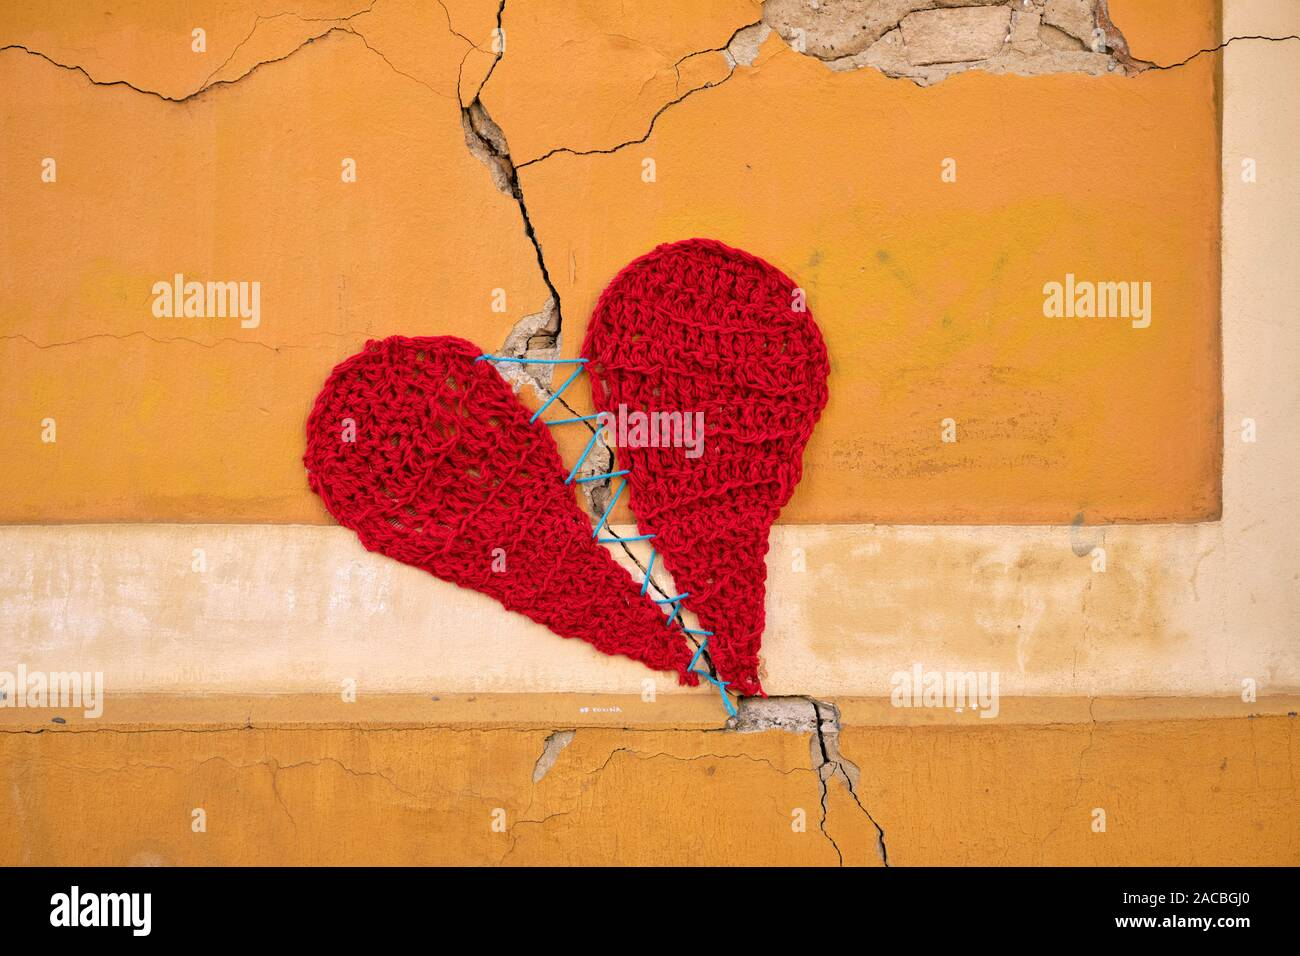 concrete-wall-with-a-crack-covered-by-a-wool-knitting-of-two-parts-of-heart-held-together-by-a-single-string-2ACBGJ0.jpg